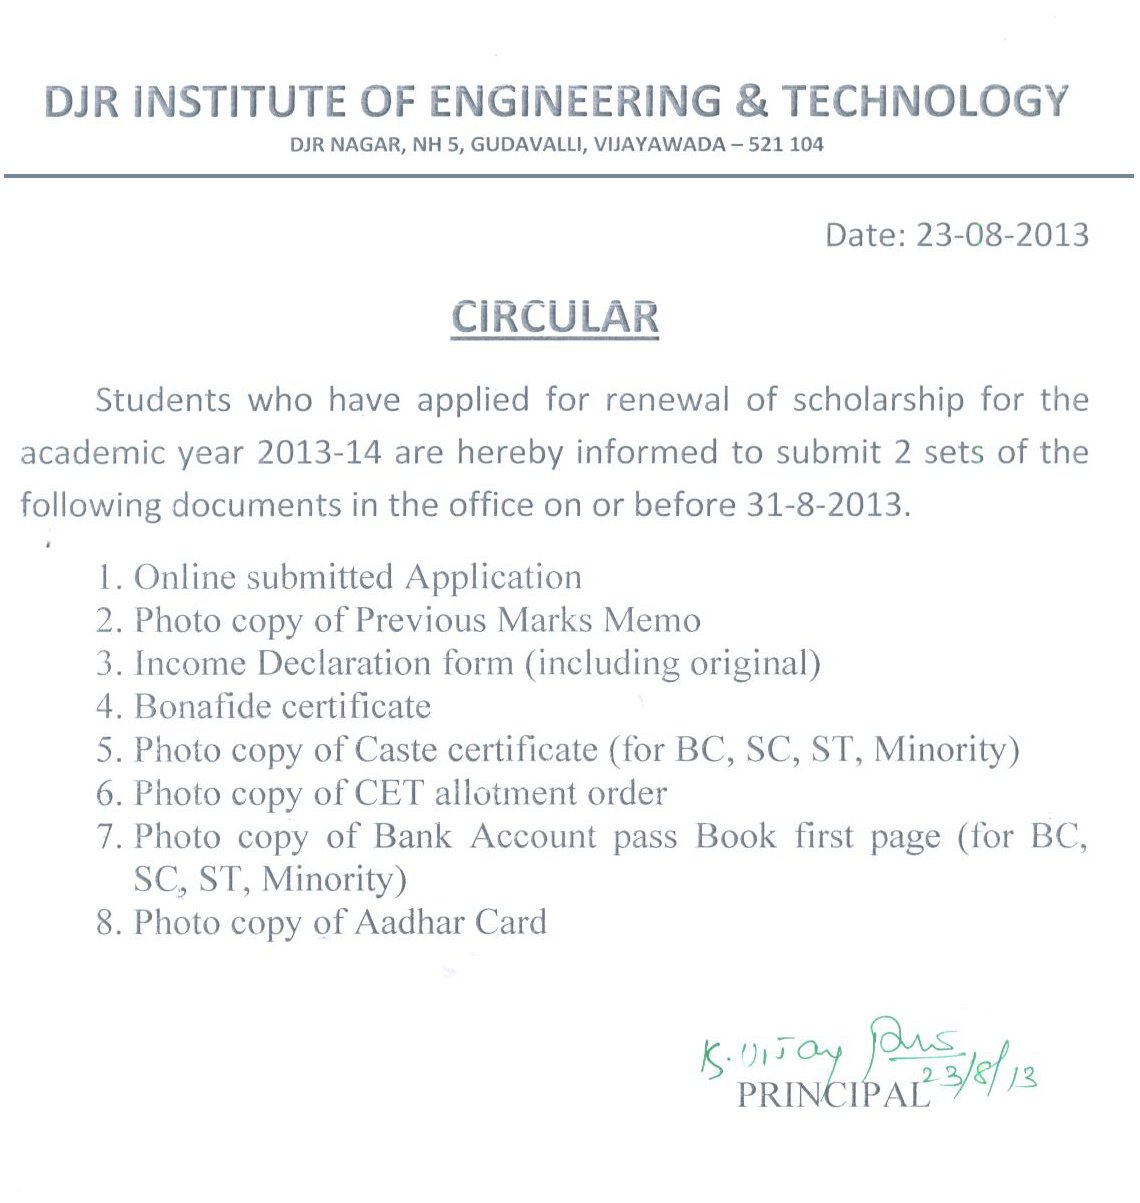 Djr institute of engineering technology scholoar ship documents required for the academic year 2013 14 xflitez Gallery